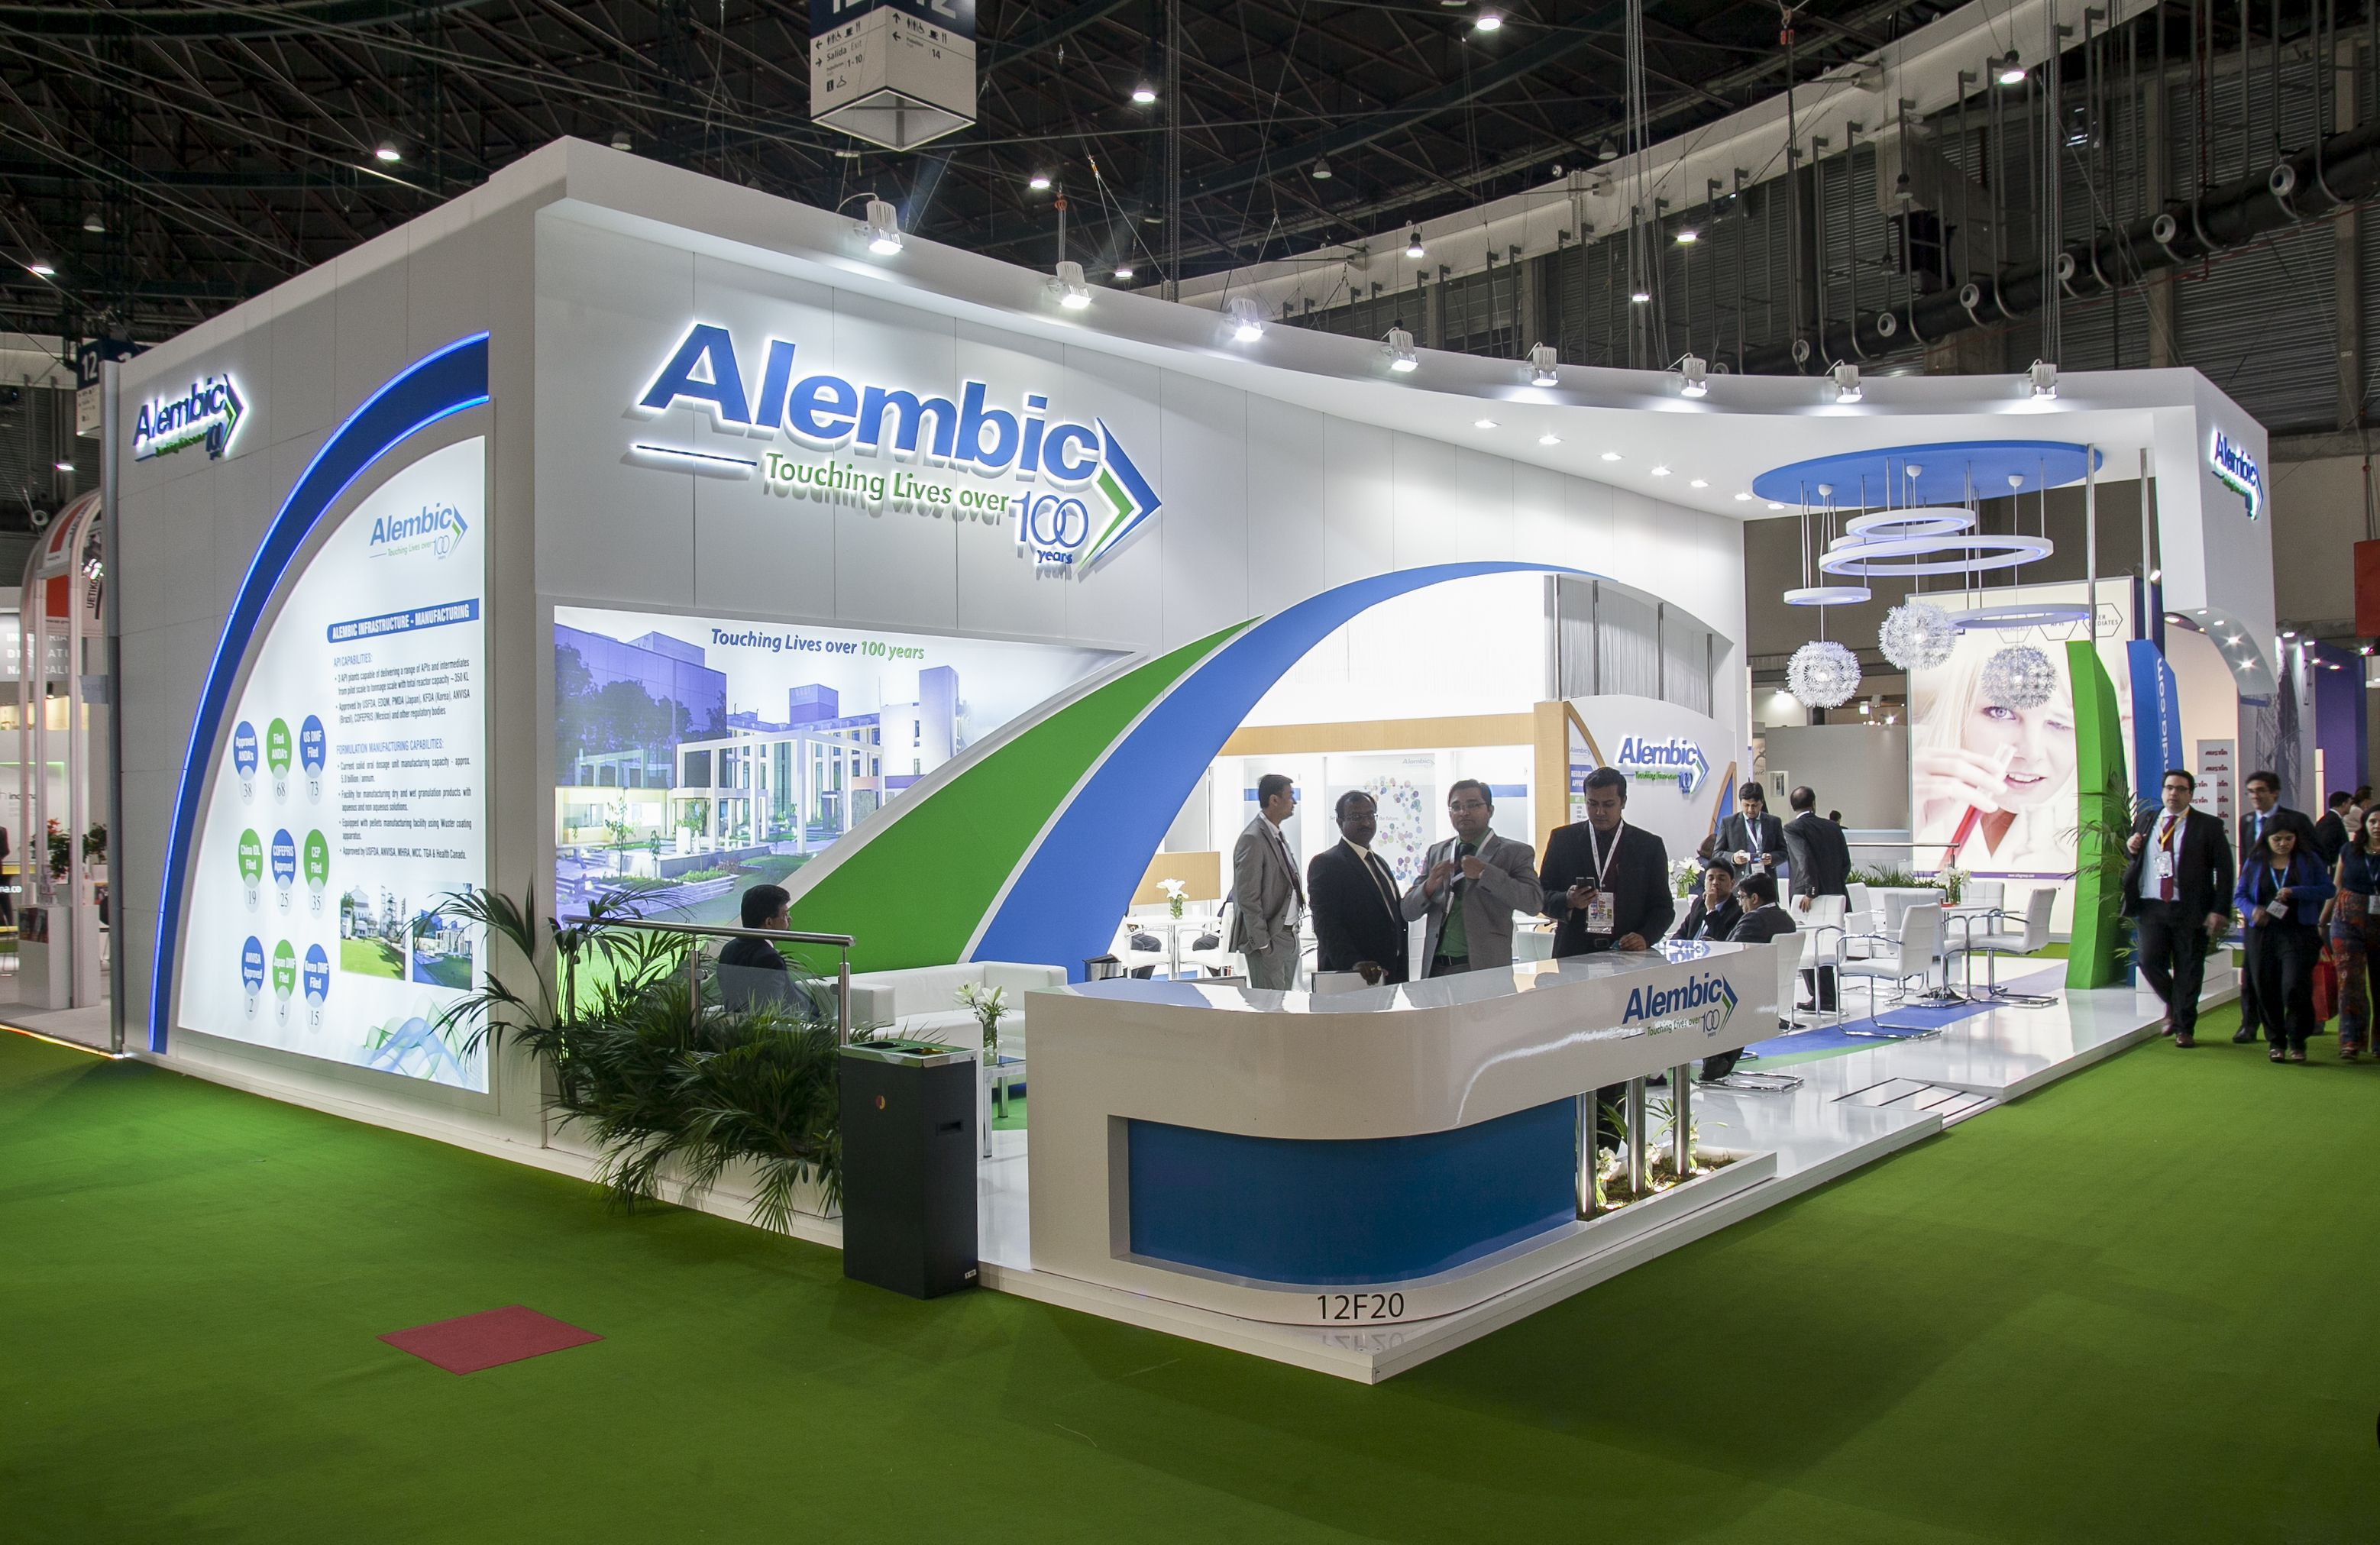 Exhibition Stand Design And Build Dubai : My how exhibition stand experts build an ace brand image